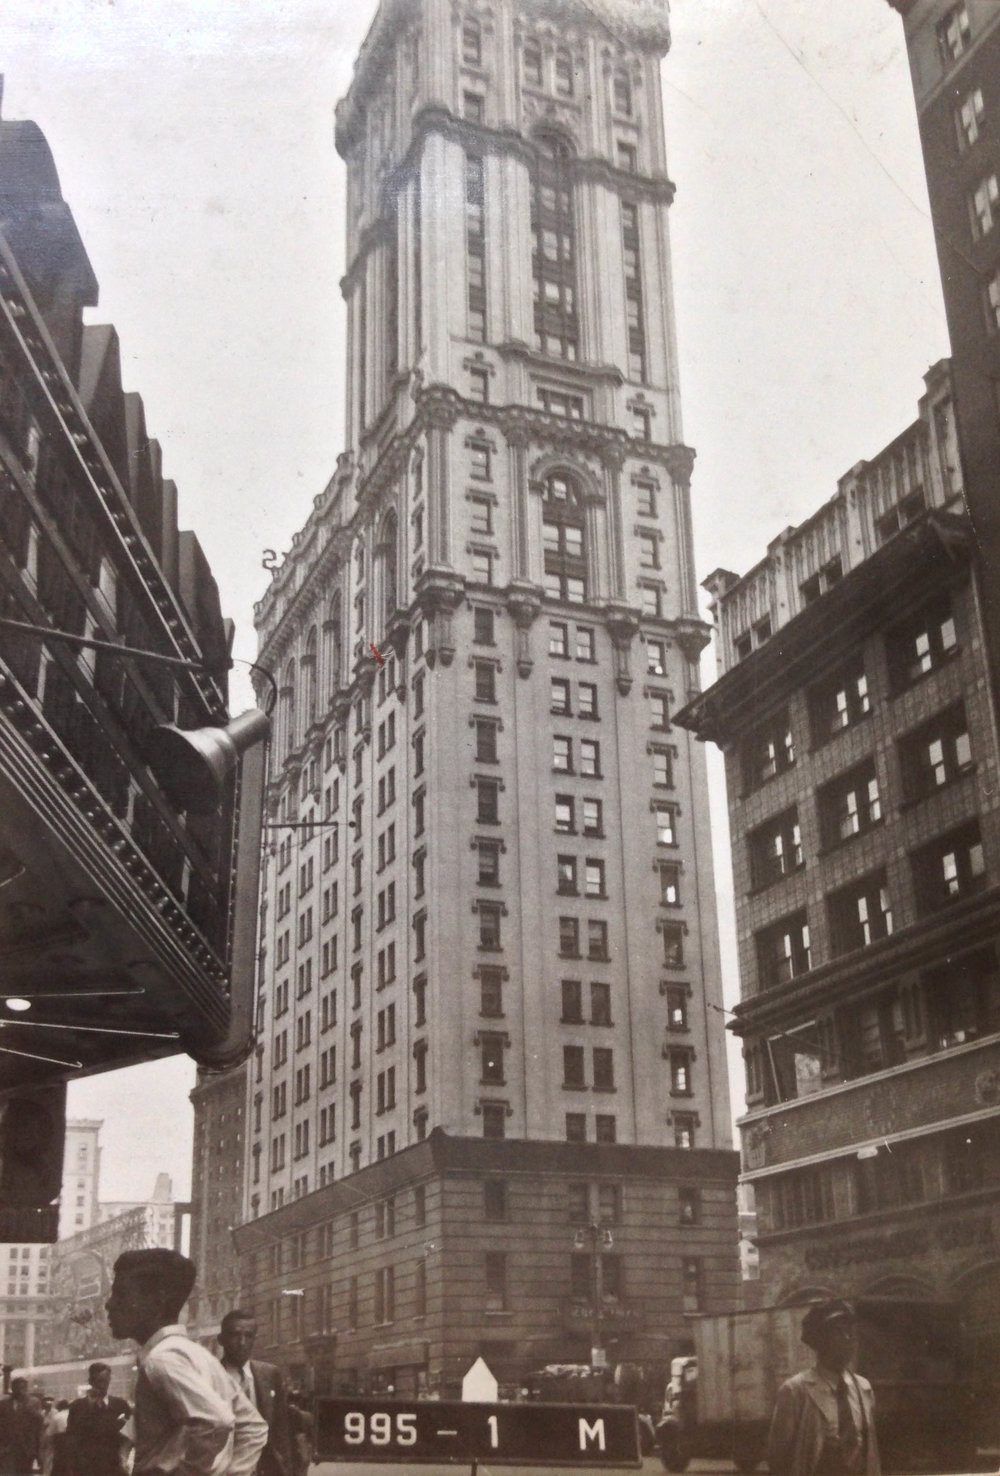 1451-55 Broadway, Manhattan, circa 1940. New Yorkers have been watching the New Year's Eve ball drop from the top of this building since 1908. Department of Finance Collection, NYC Municipal Archives.